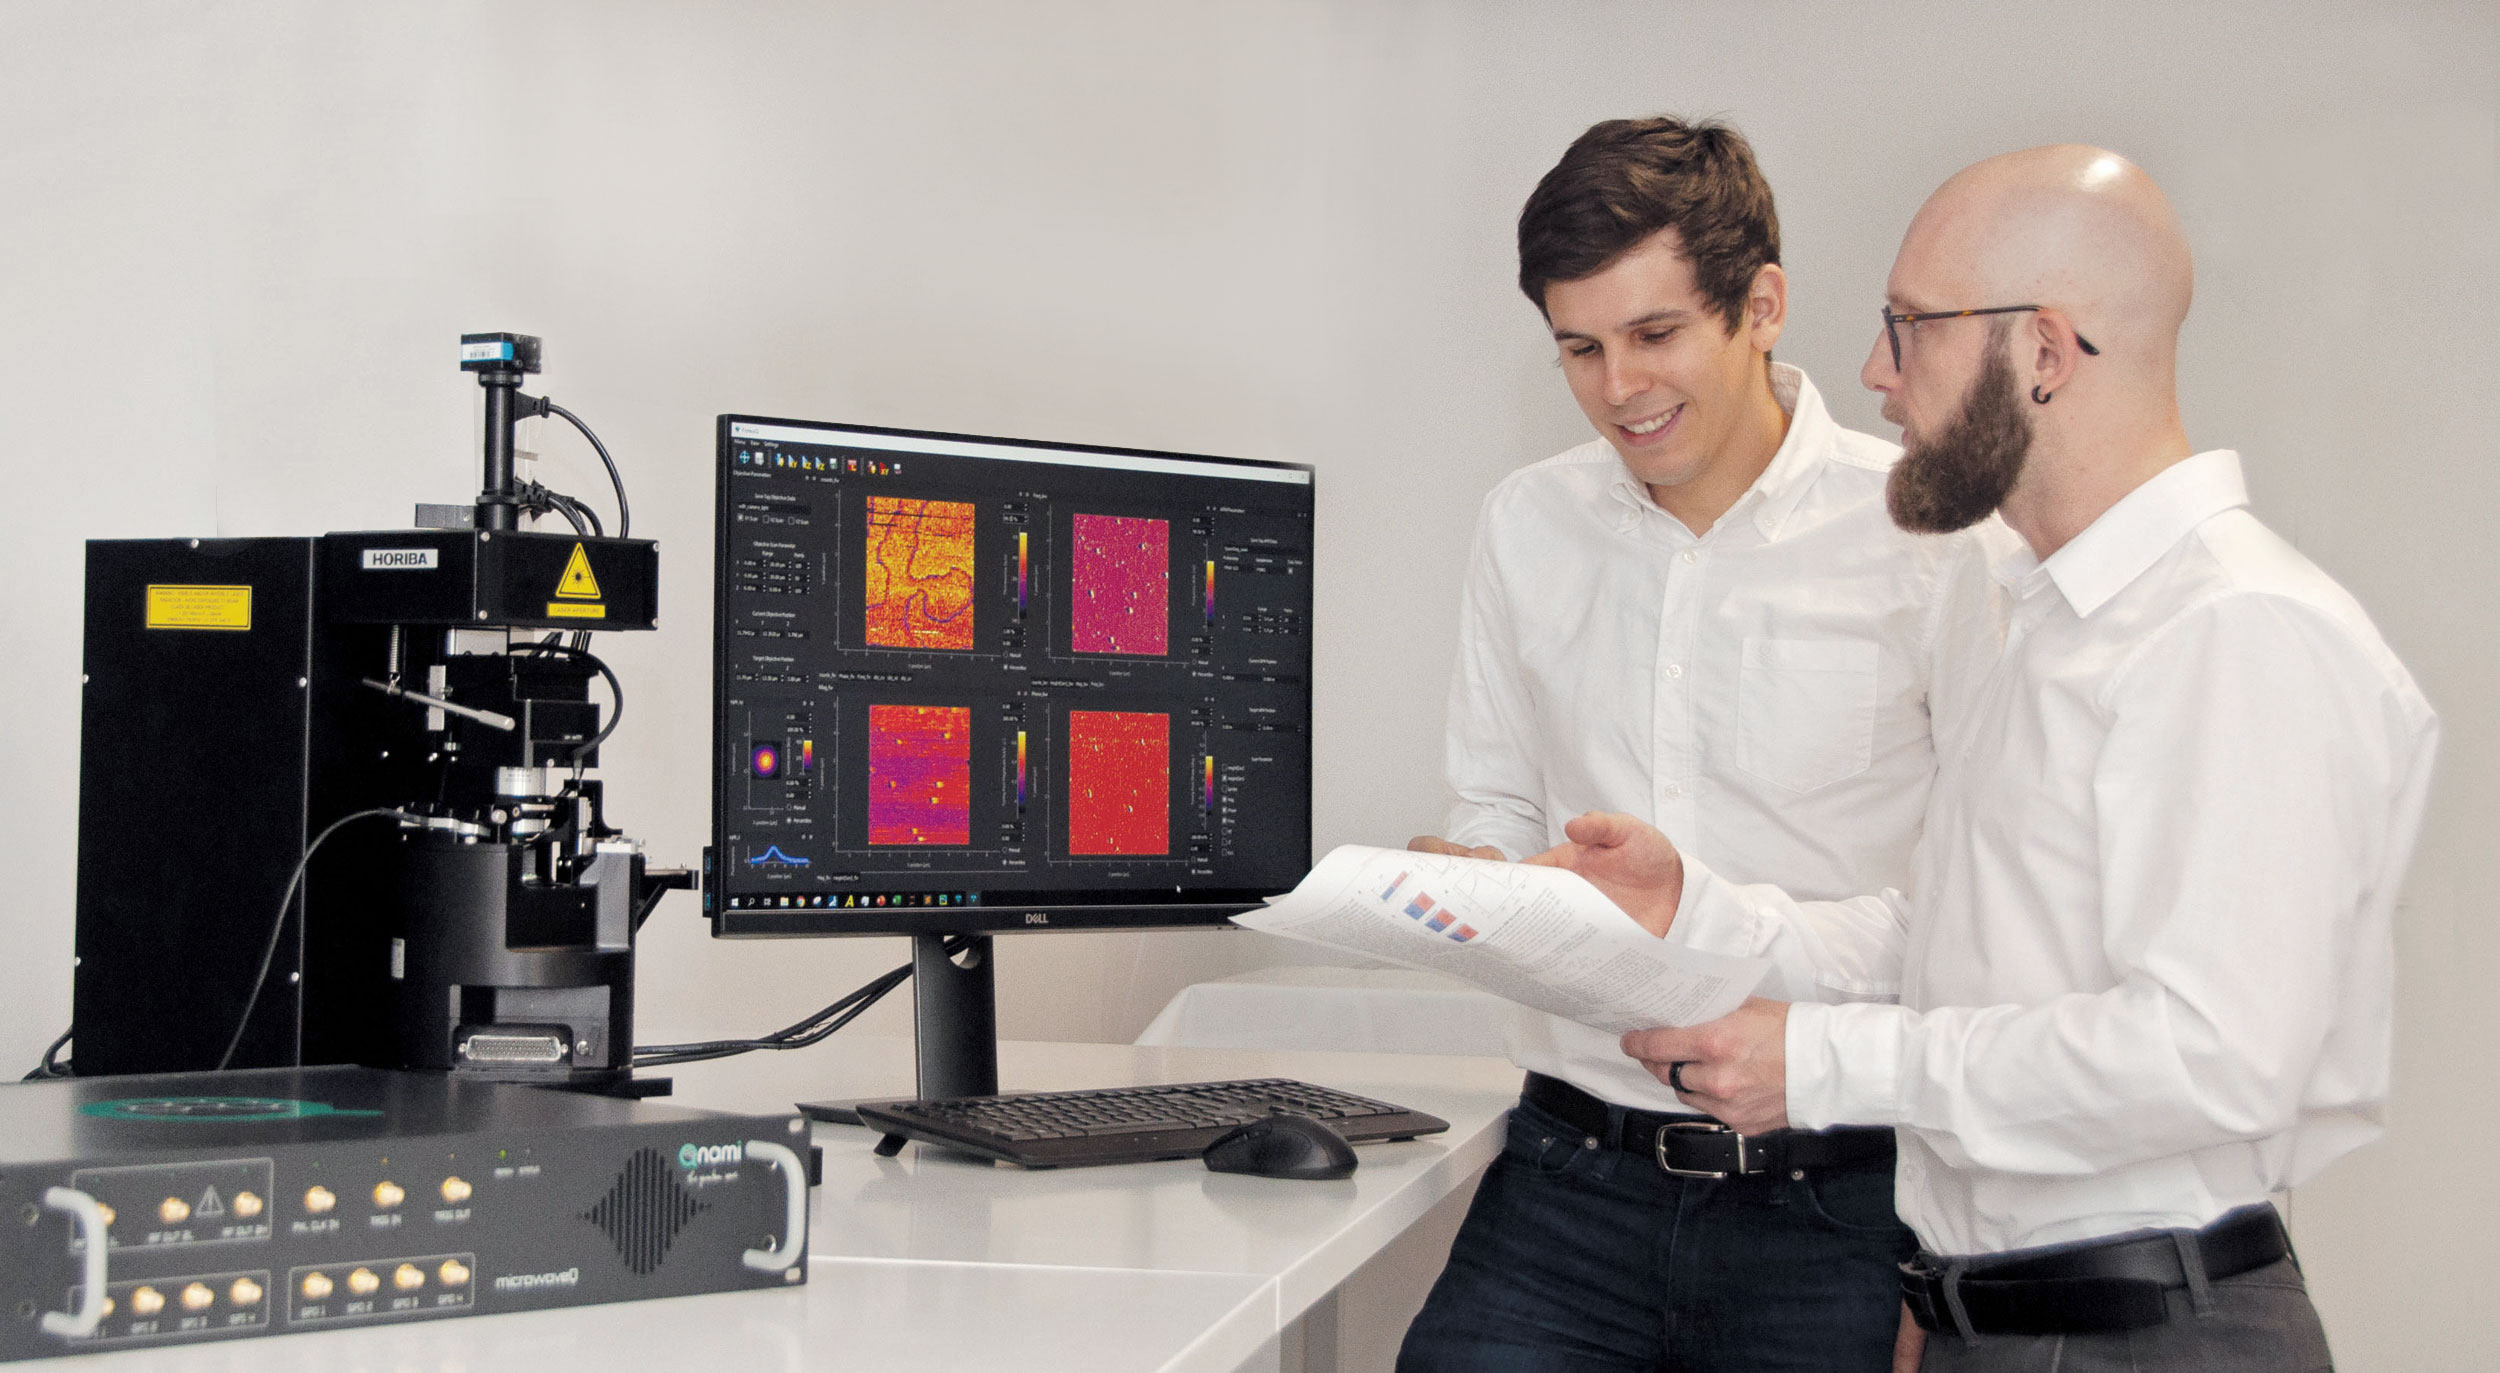 Working with the Qnami ProteusQ Scanning NV Microscopy system